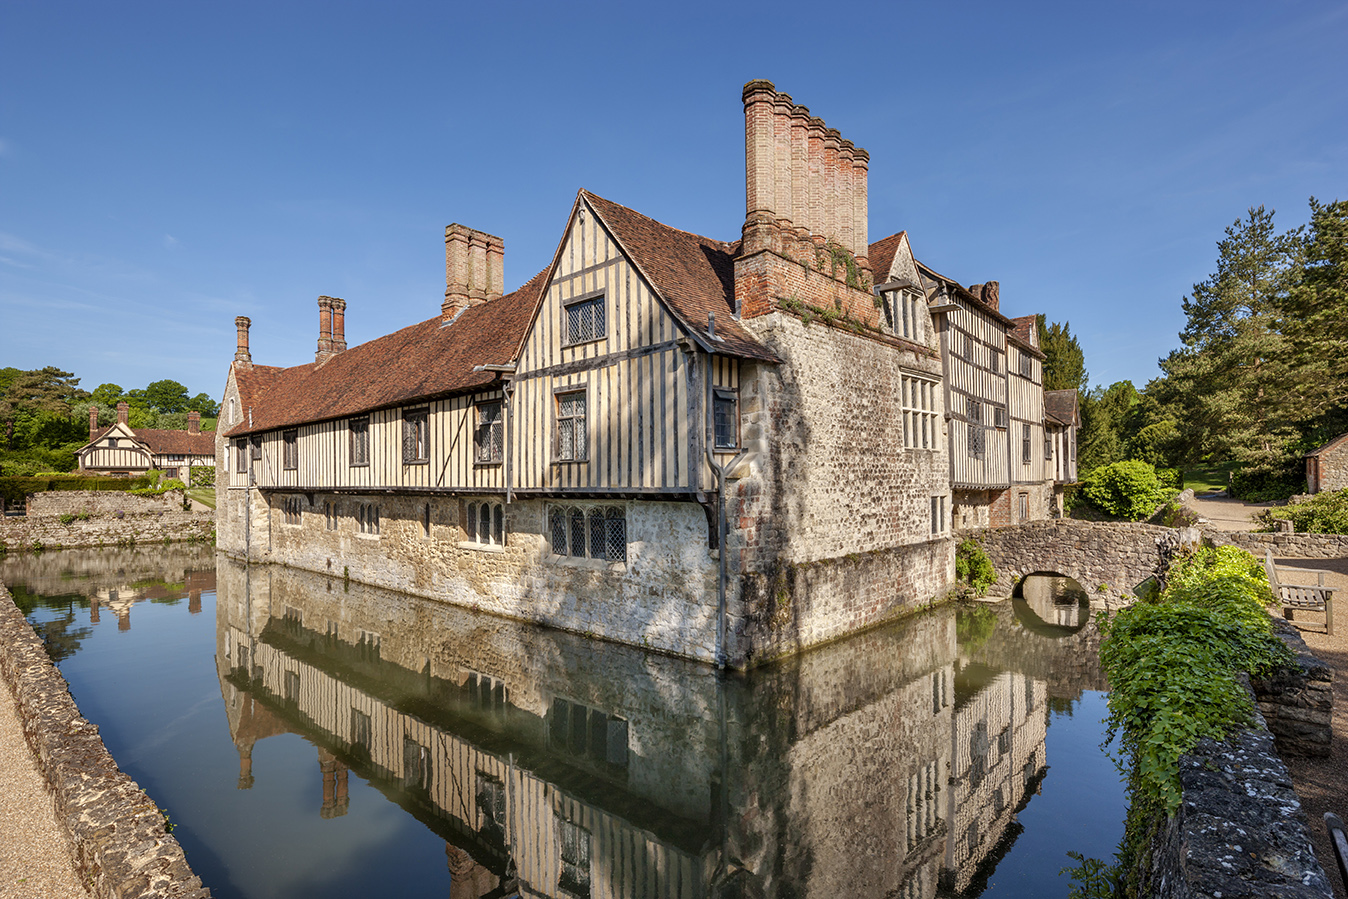 The south east corner with the cottages in the background at Ightham Mote estate, Kent. National Trust_Andrew Butler